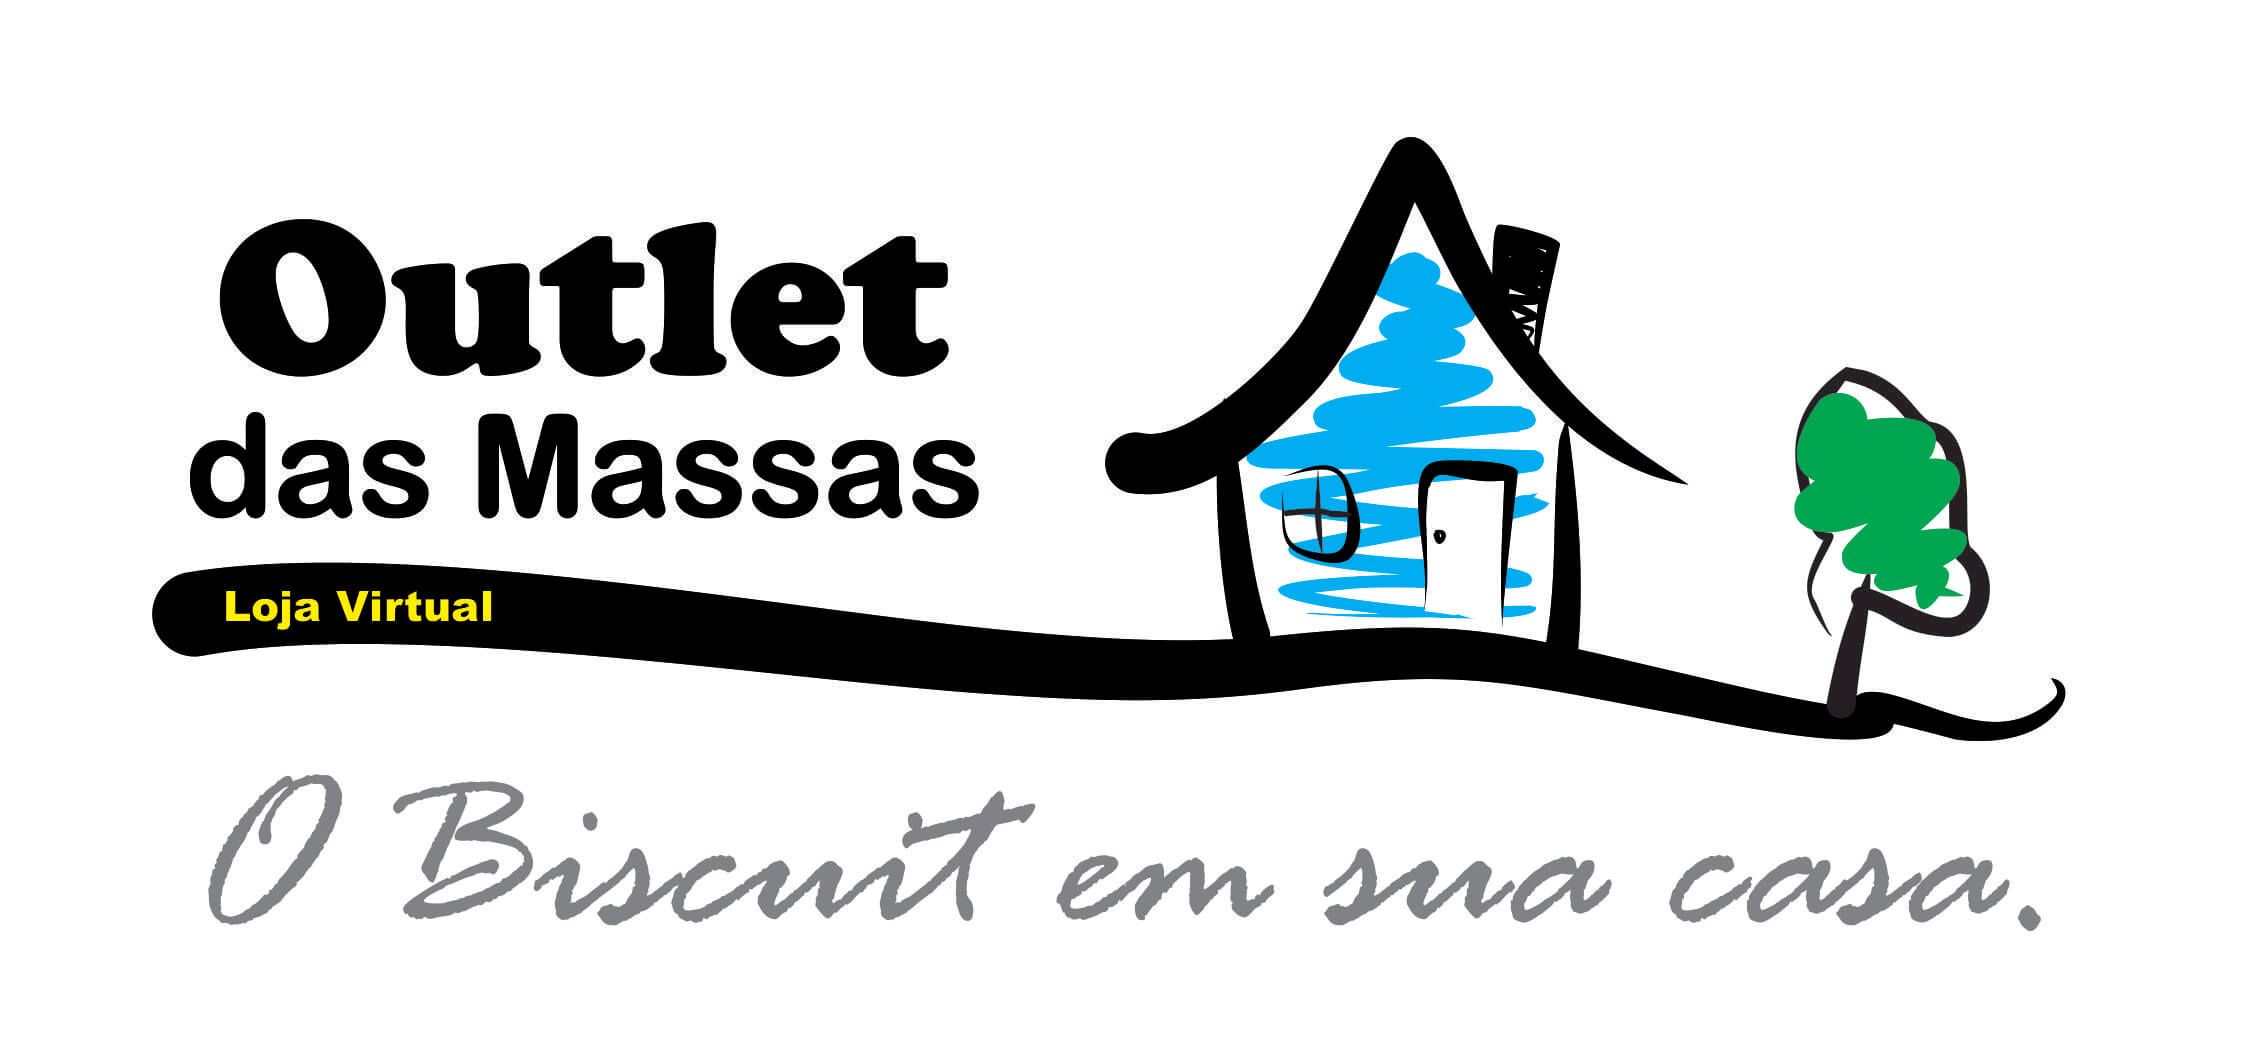 OutLet das Massas